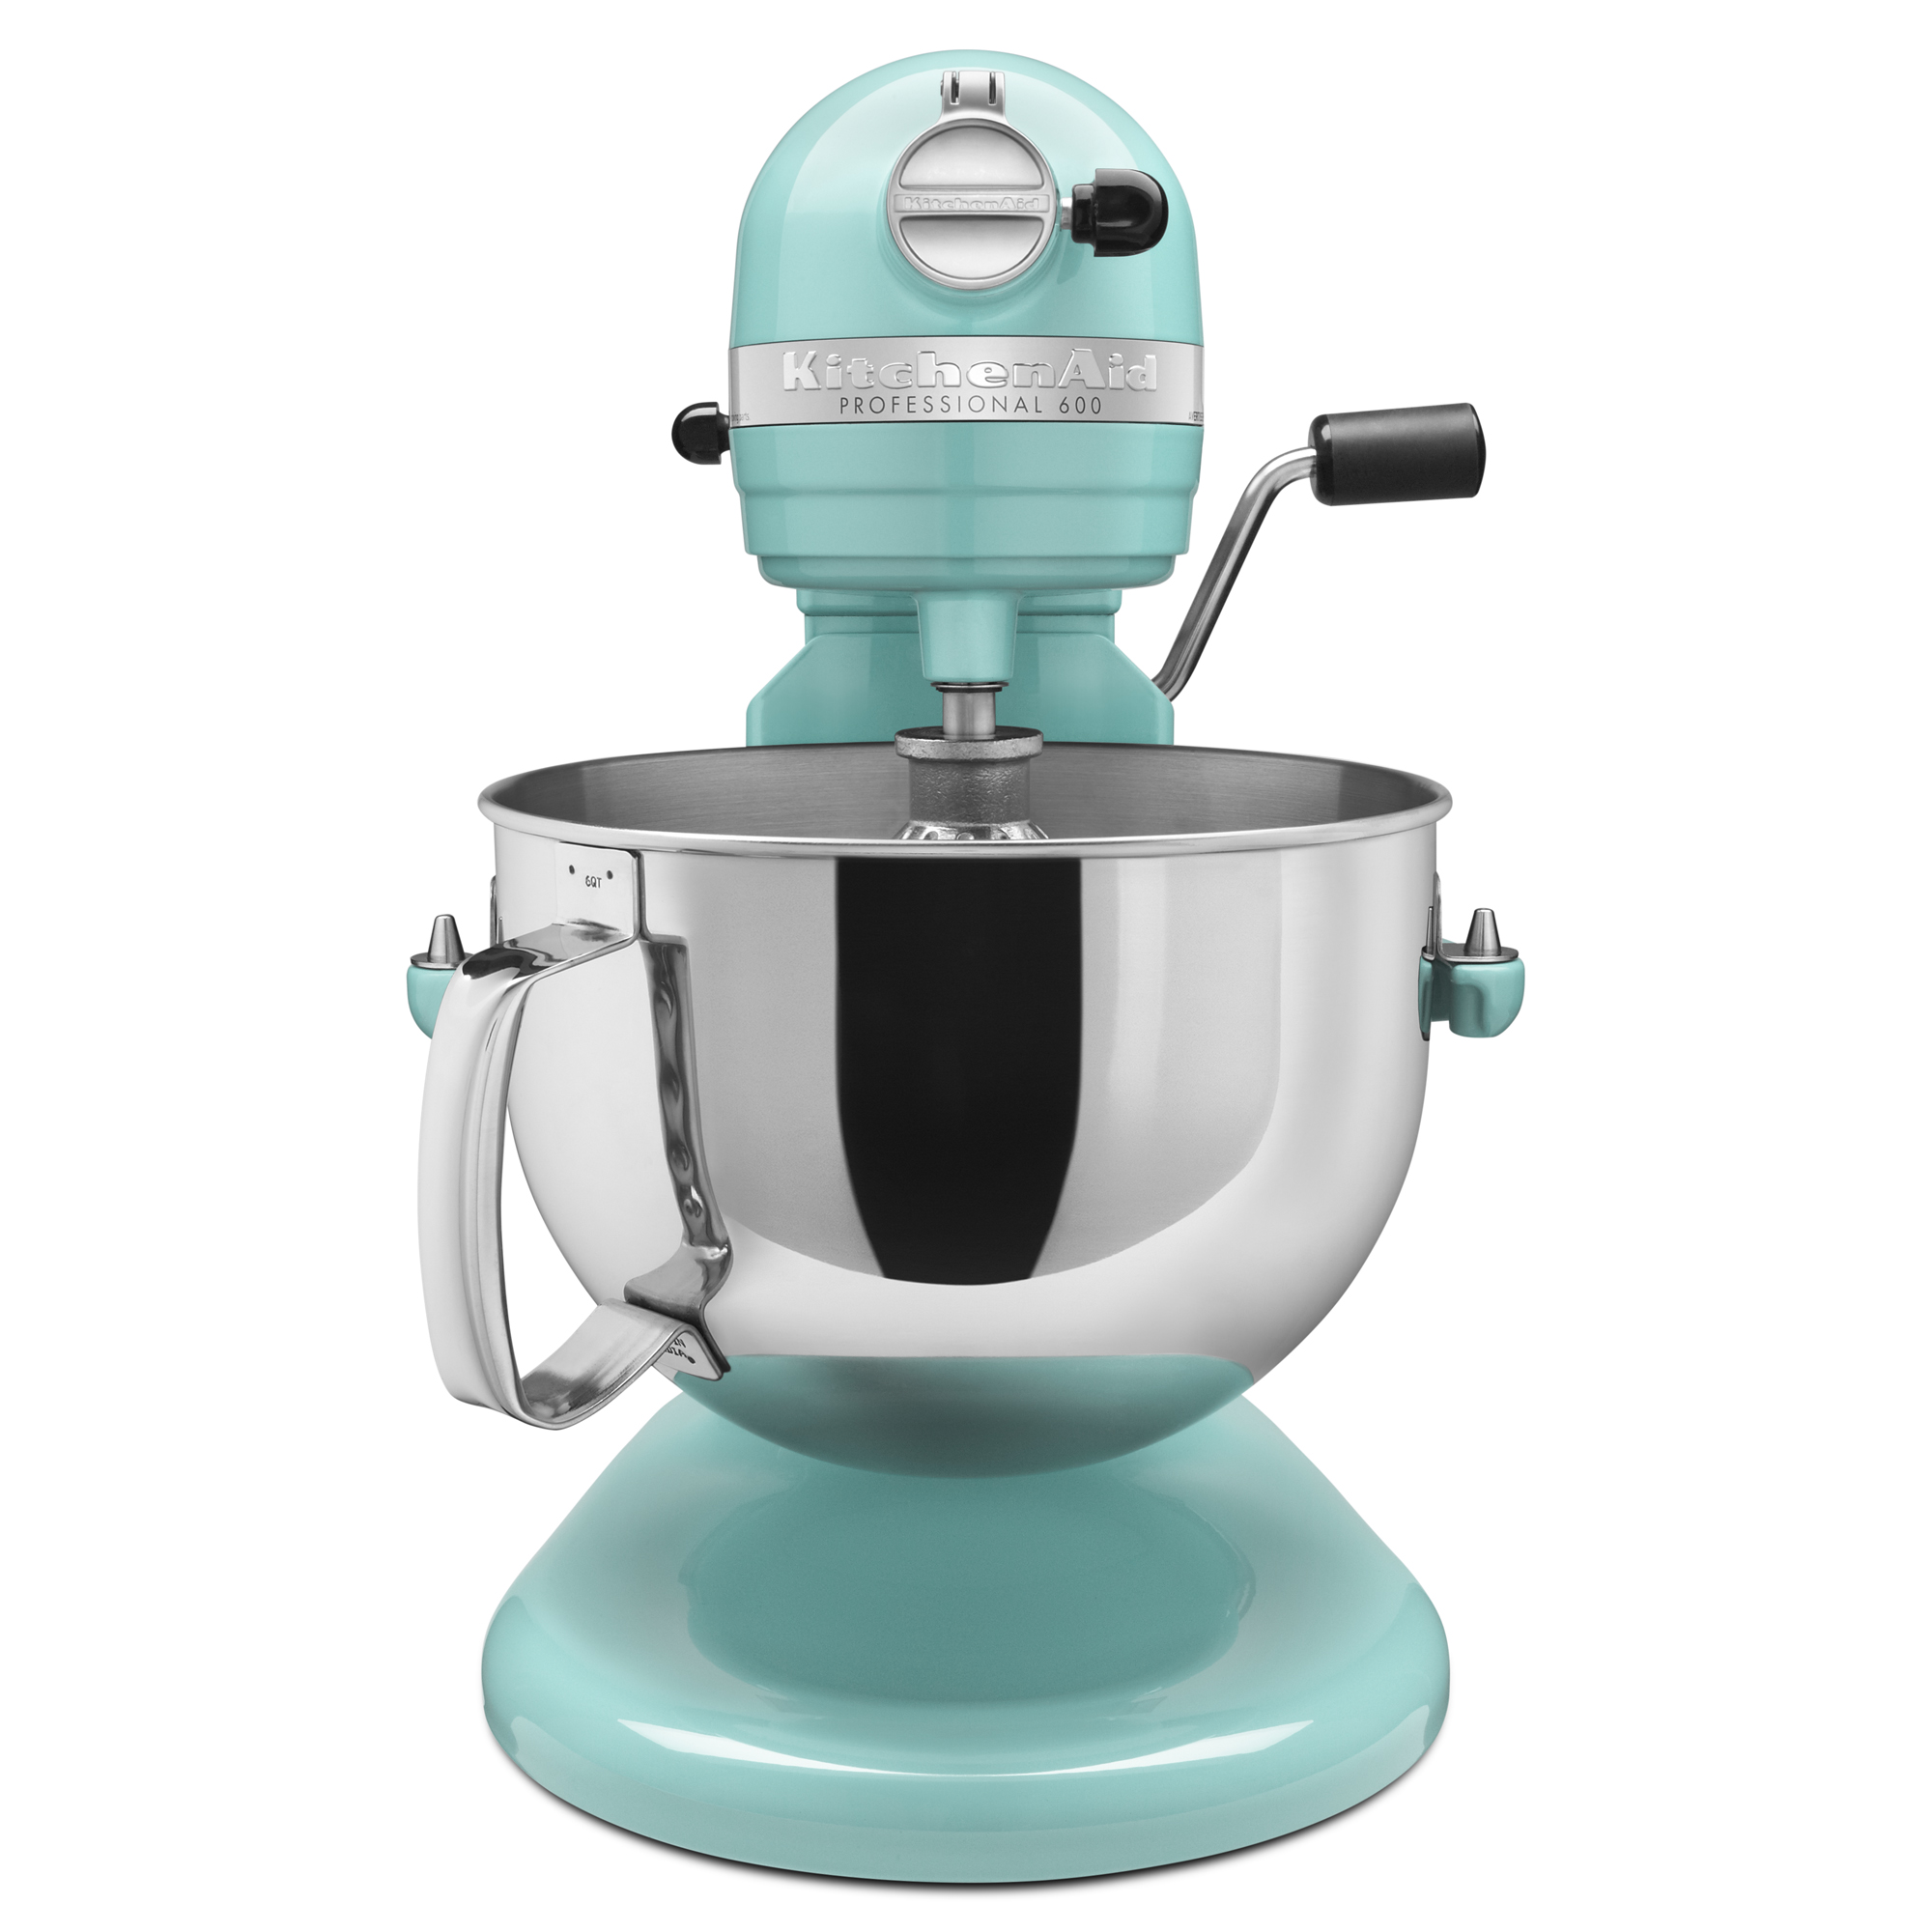 KitchenAid-Refurbished-Pro-600-Series-6-Quart-Bowl-Lift-Stand-Mixer-RKP26M1X thumbnail 6